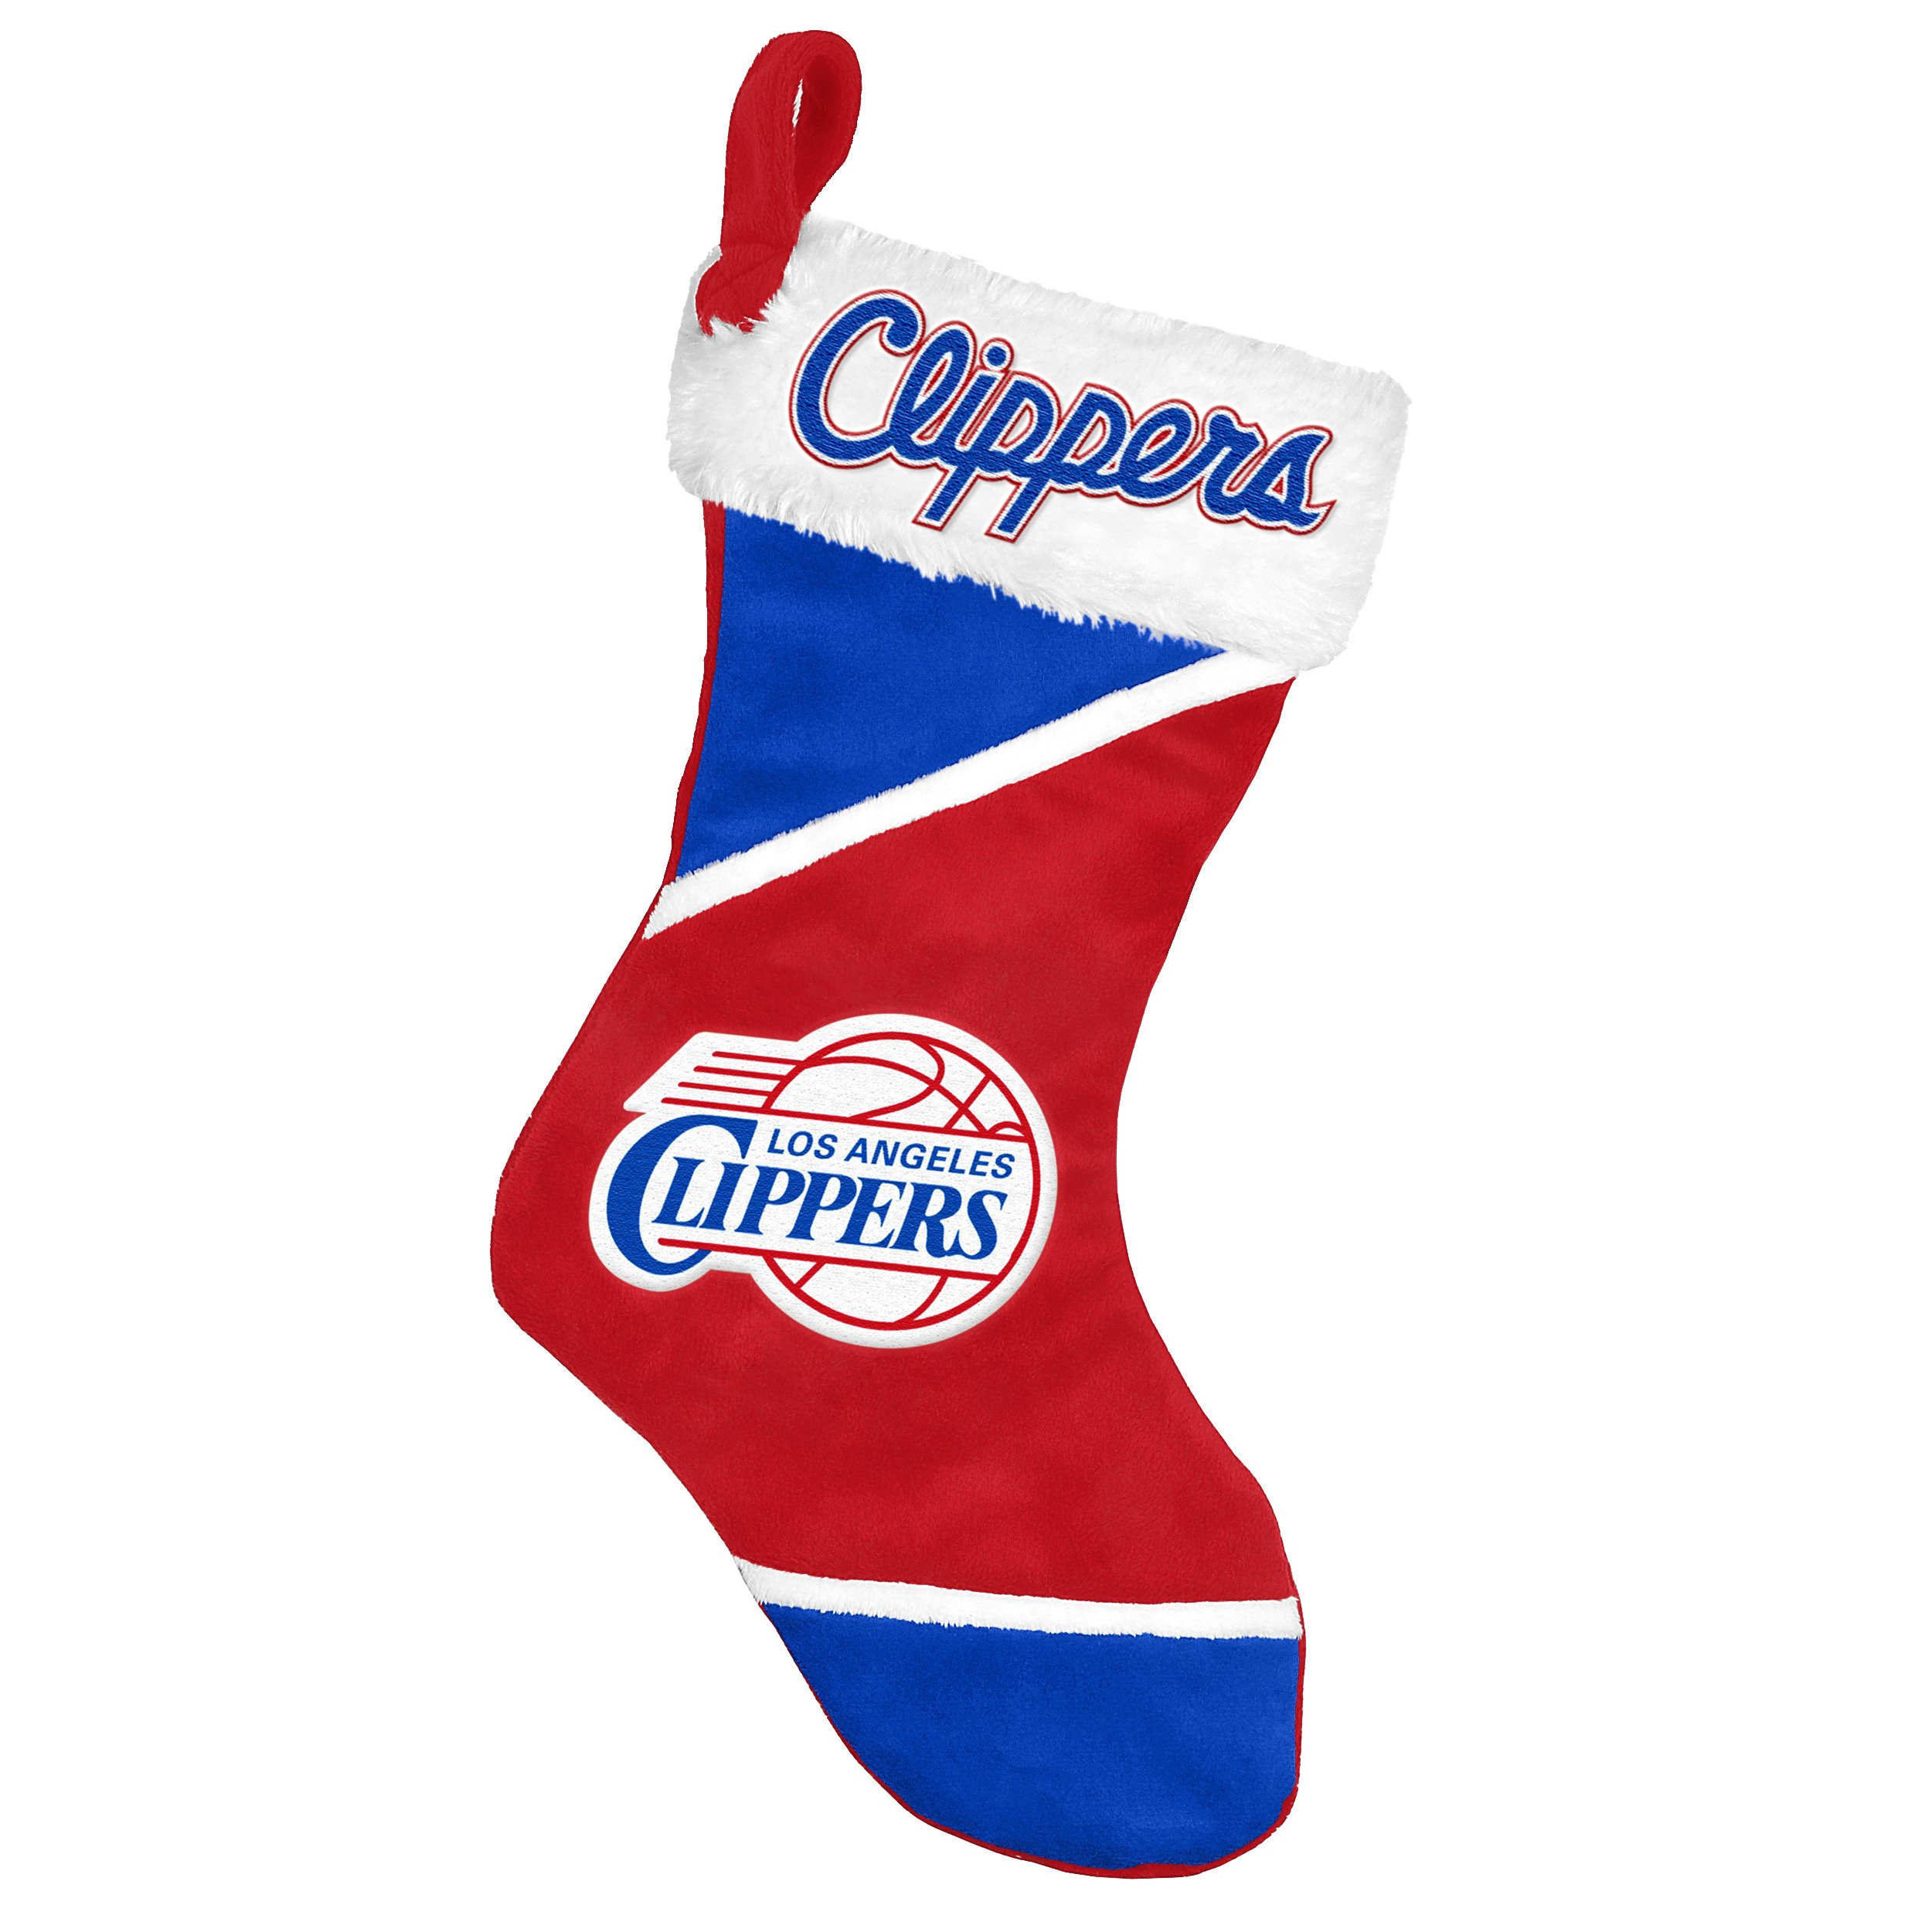 FOCO Los Angeles Clippers 2014 Colorblock Stocking